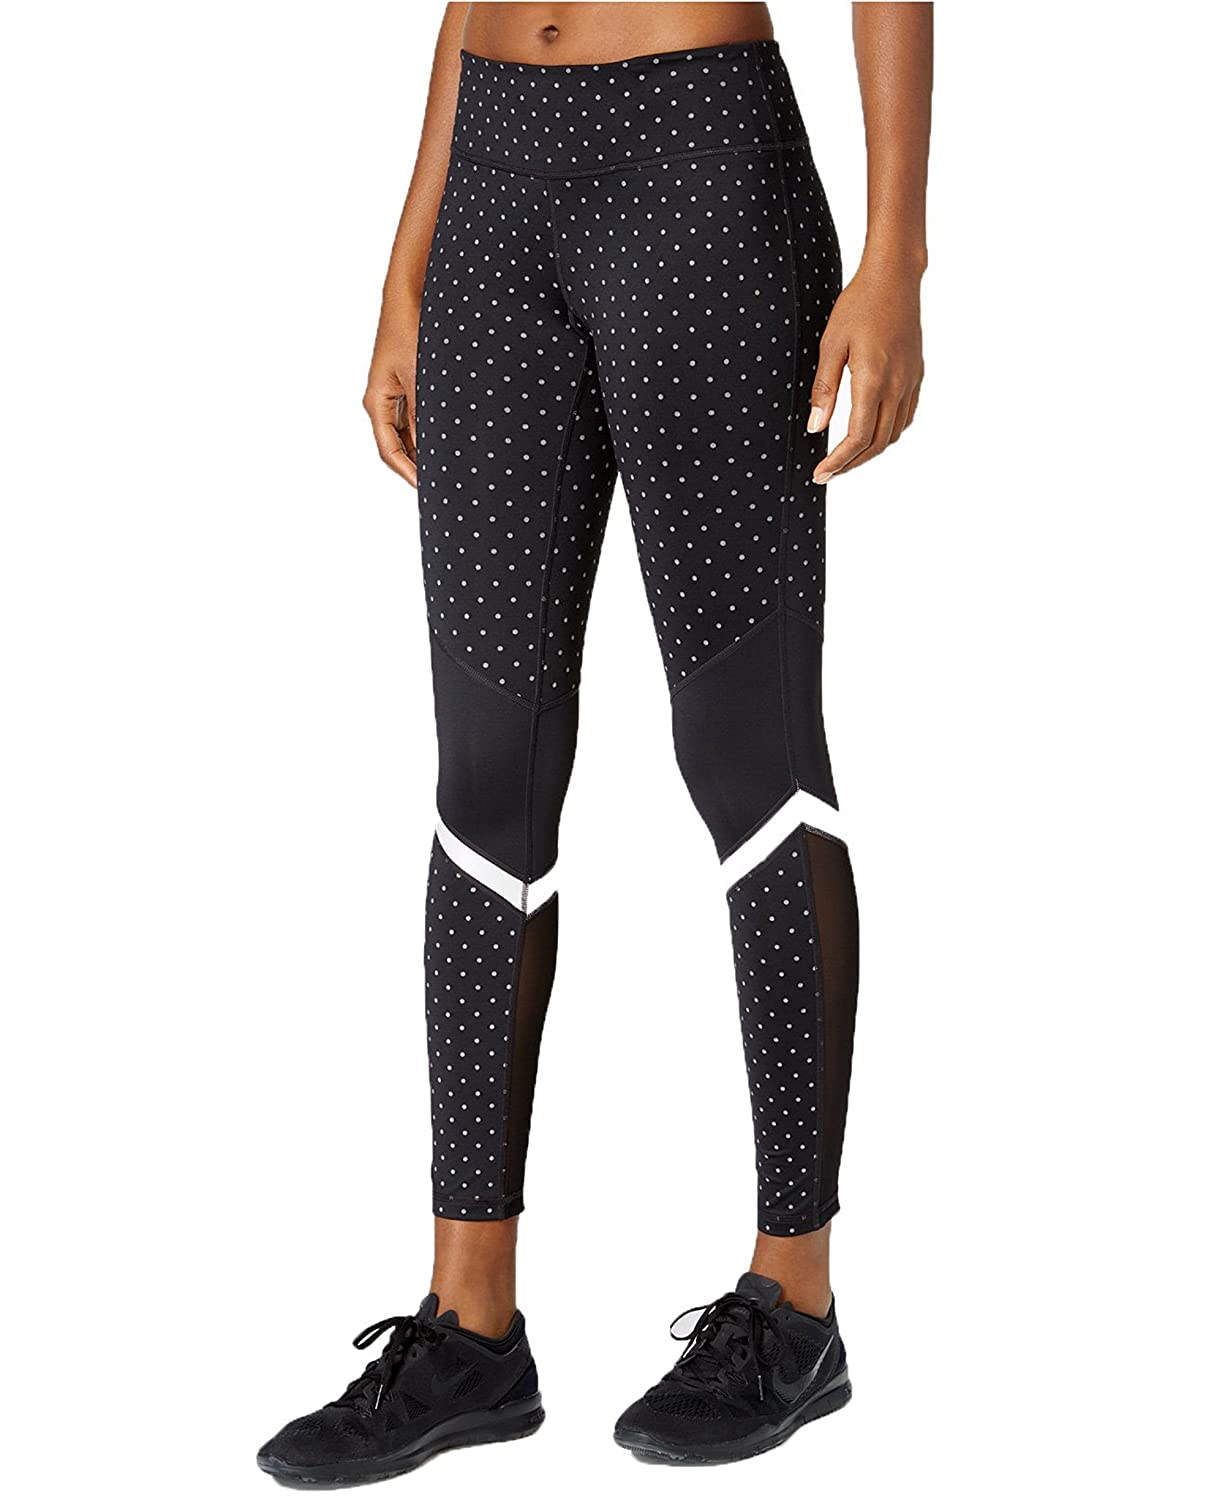 6d8e95b61 Ideology Womens Mesh Inset Printed Athletic Leggings at Amazon Women s  Clothing store